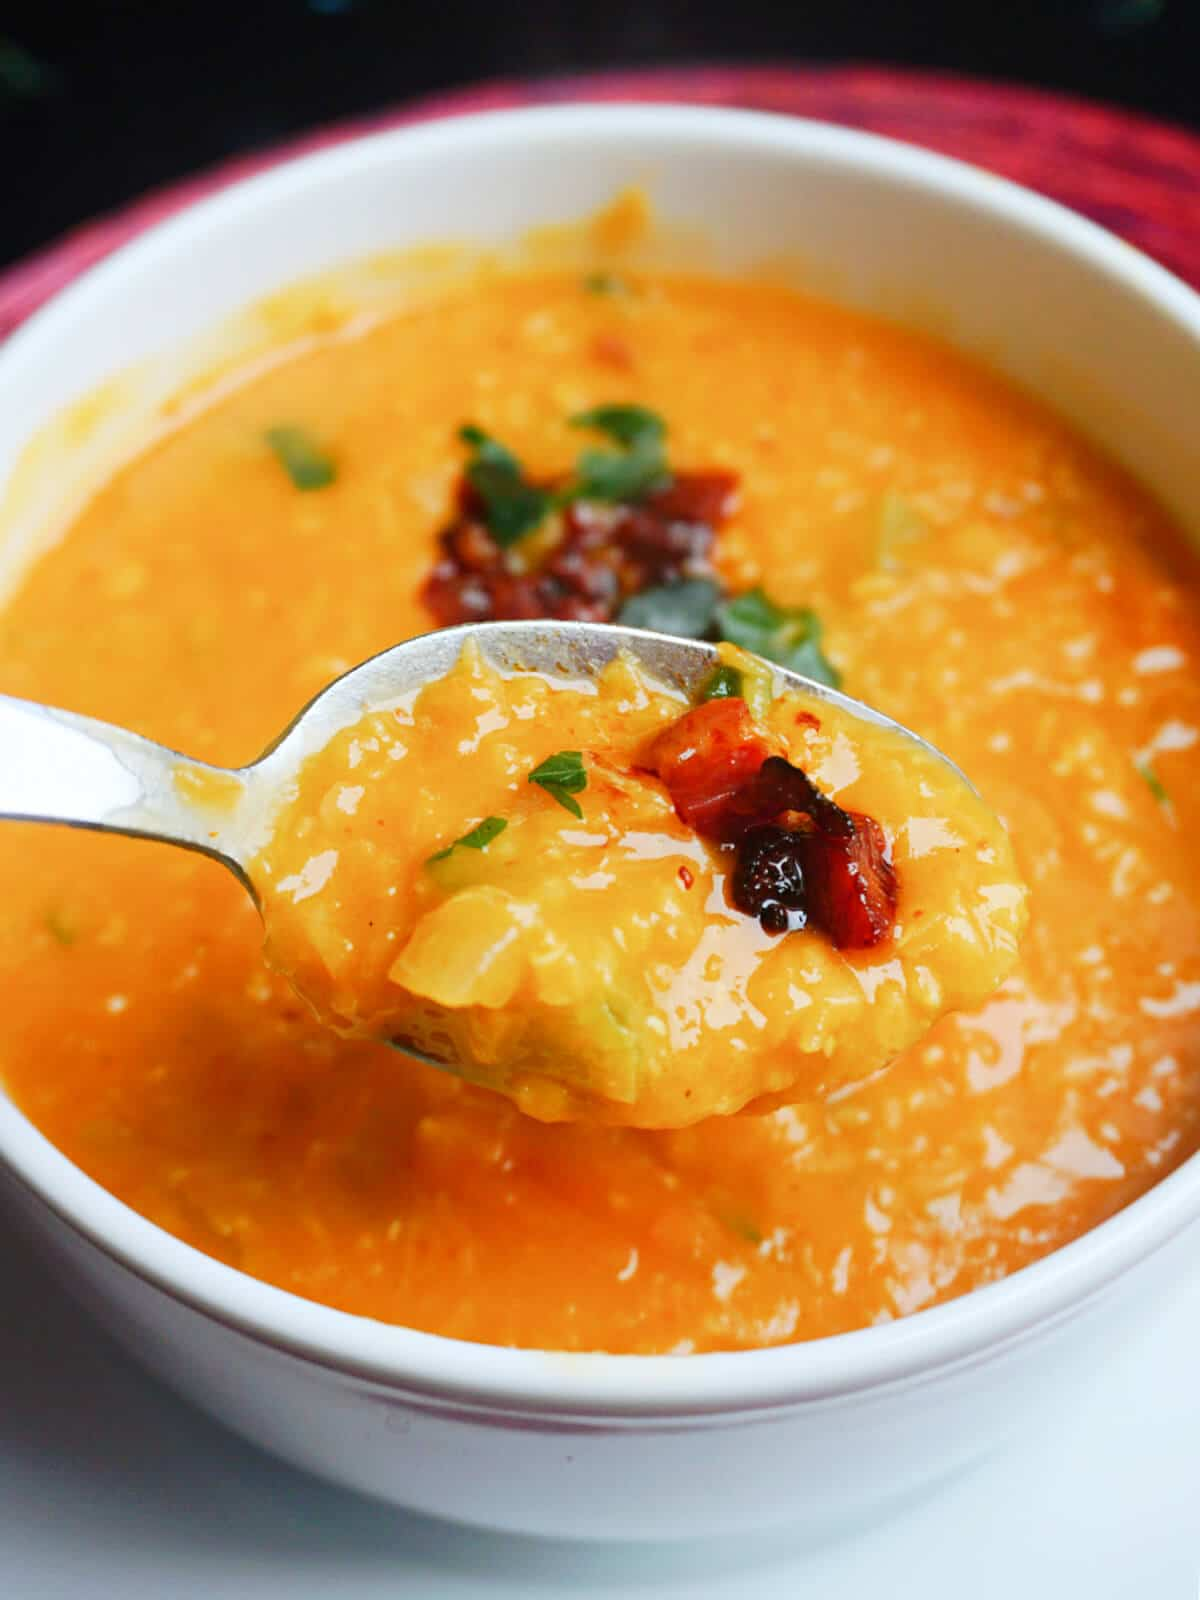 A spoonful of lentil and chorizo soup over a bowl of soup